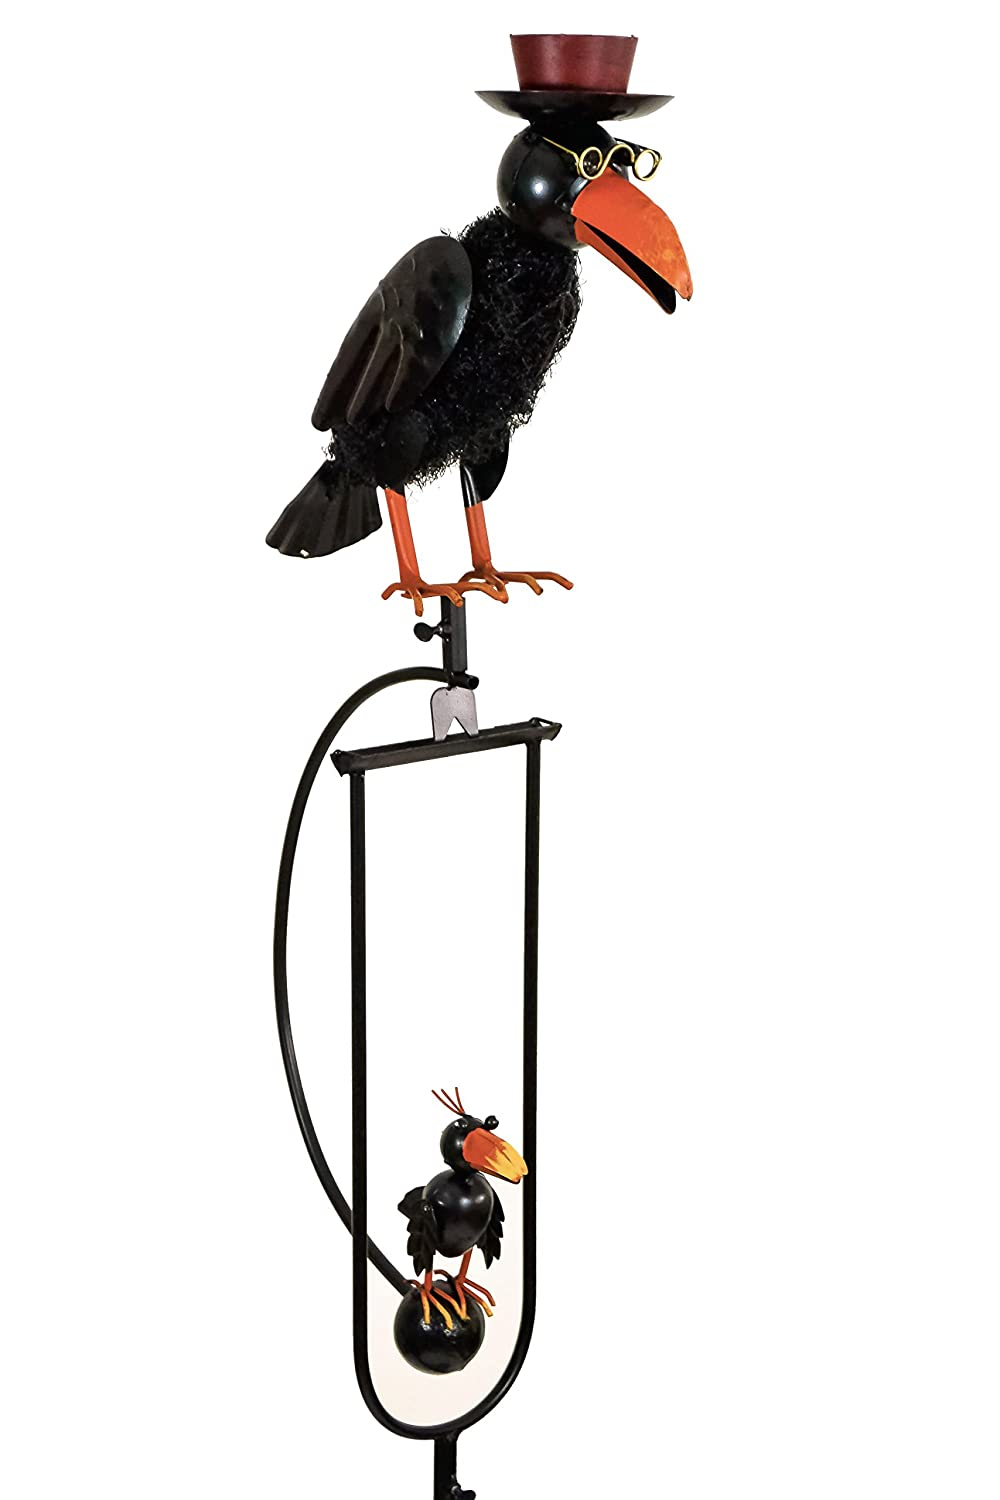 east2eden Rocking Balancing Black Dad & Baby Crow Metal Garden Wind Rocker Ornament